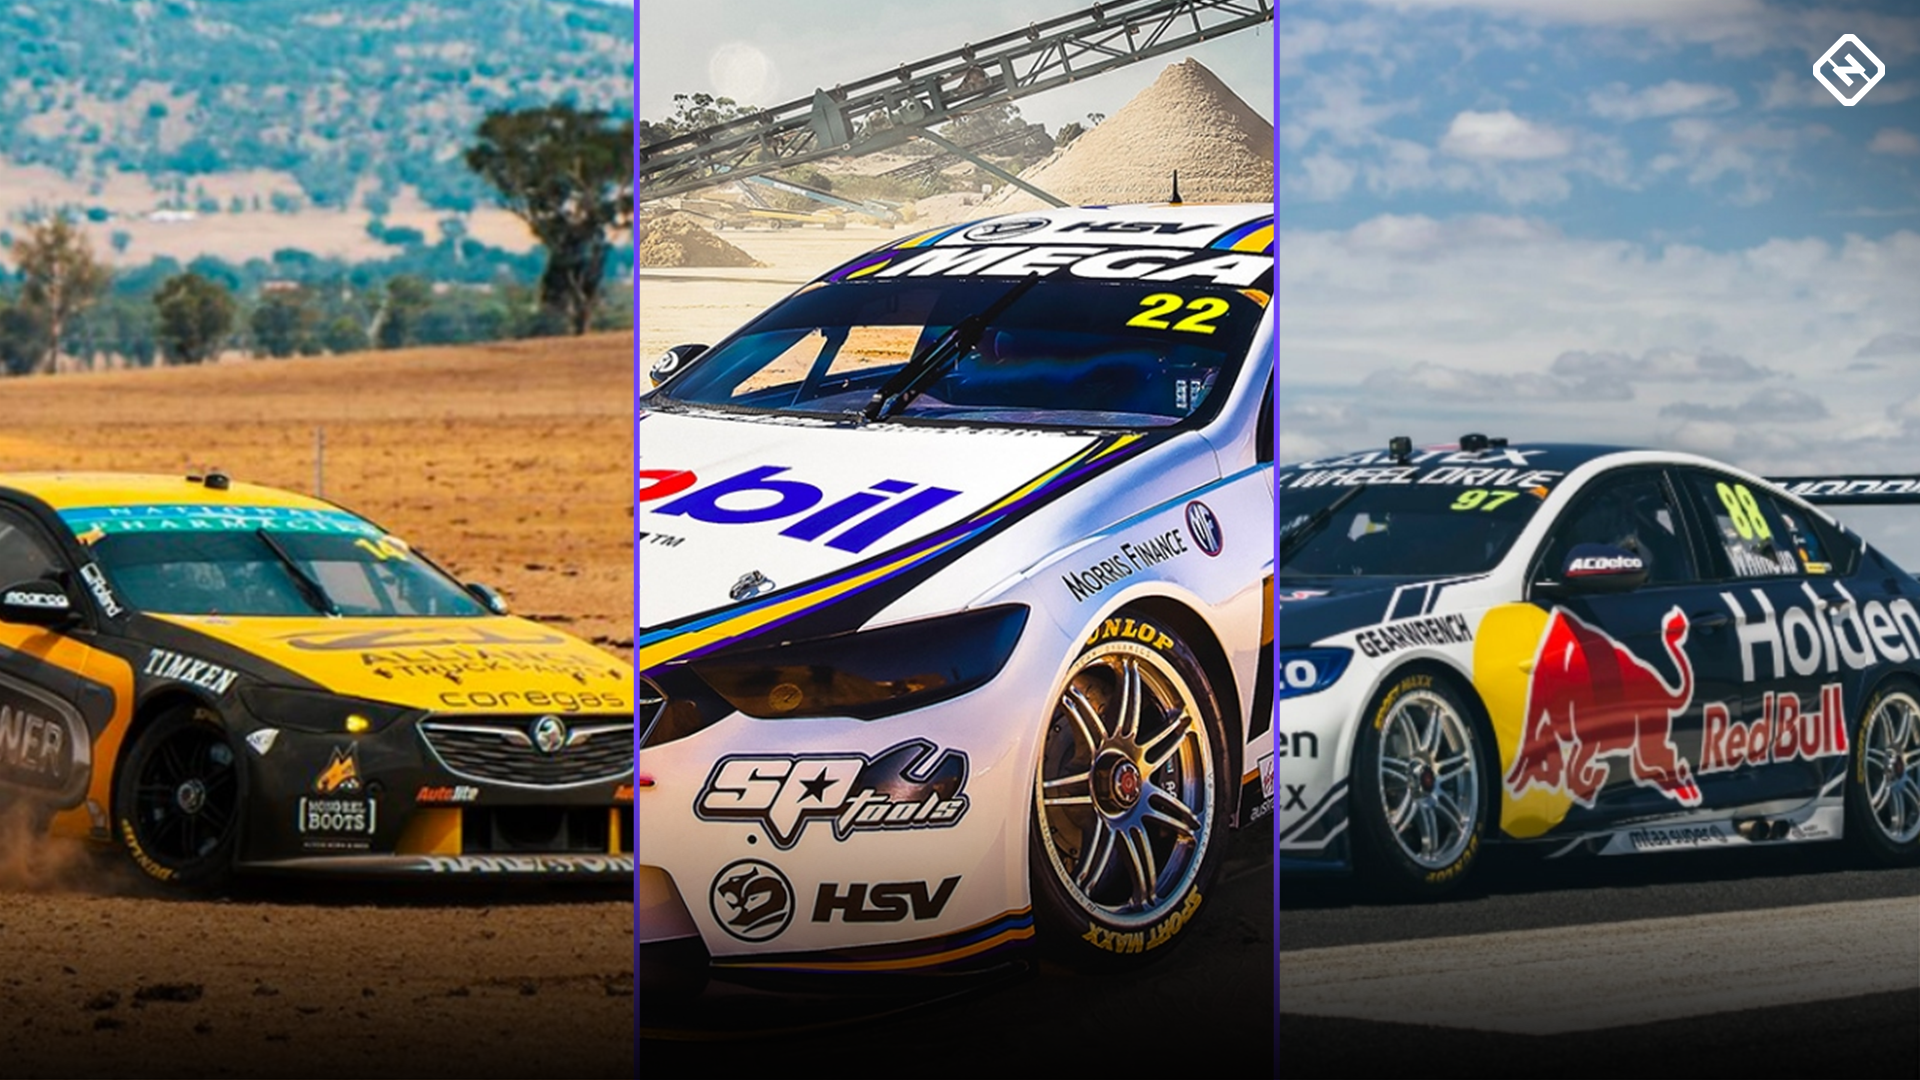 Supercars Liveries Uu Ixtfyw Ghcd Uxyf Zq on 2019 Ford Falcon